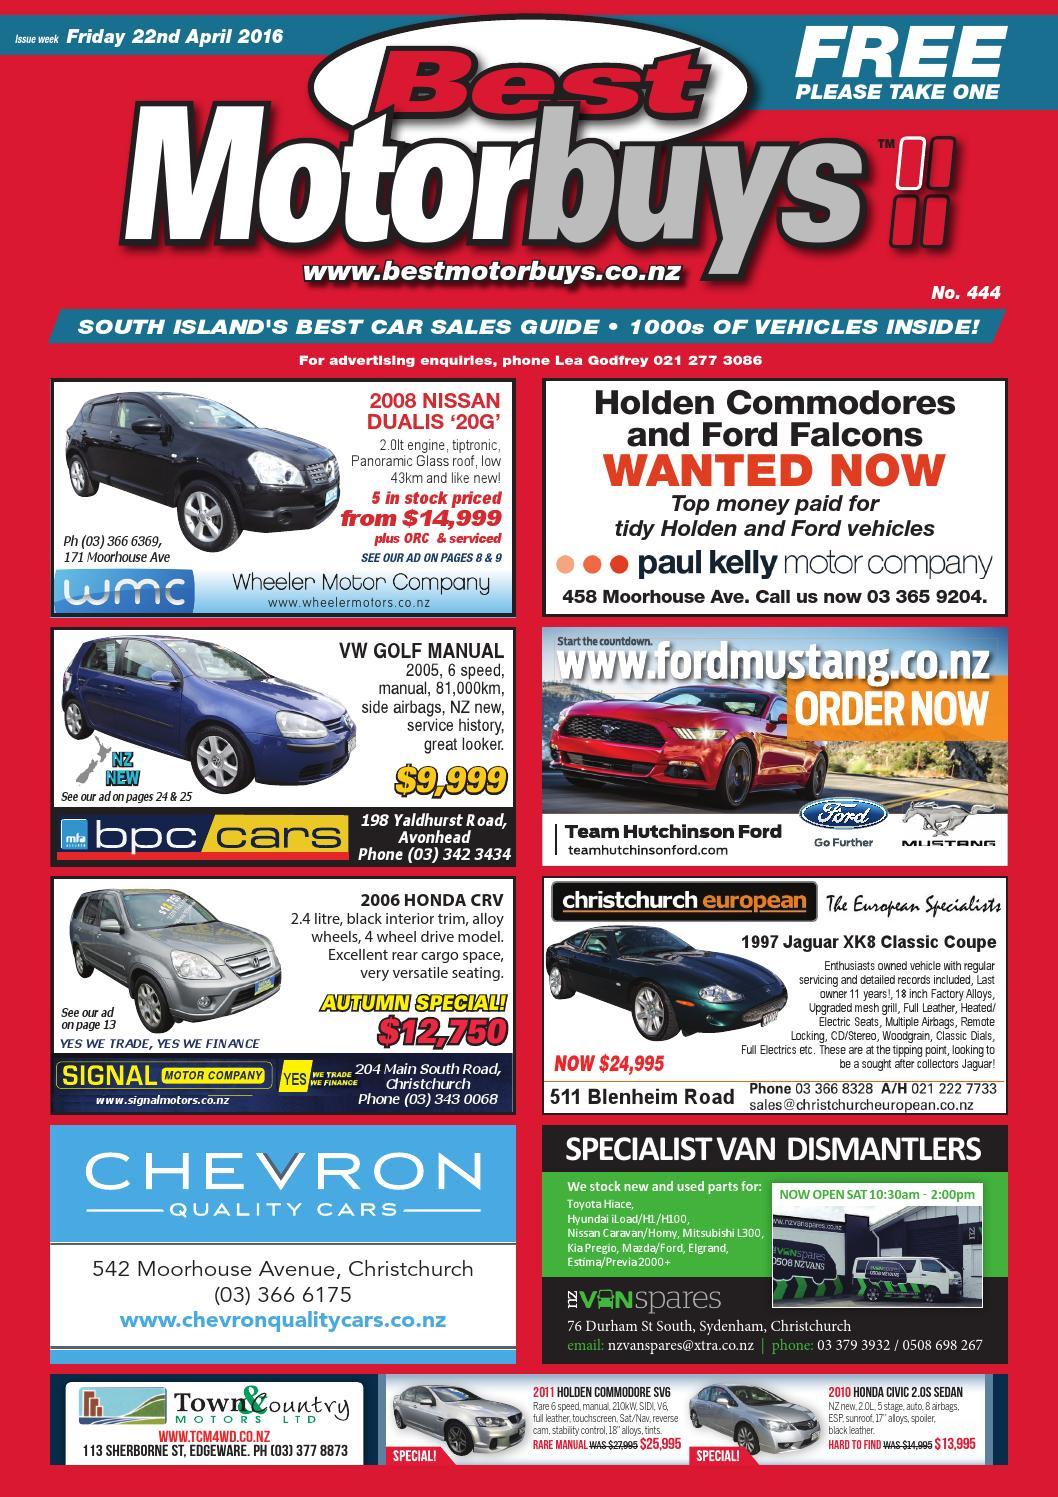 Best Motorbuys 22-04-16 by Local Newspapers - issuu